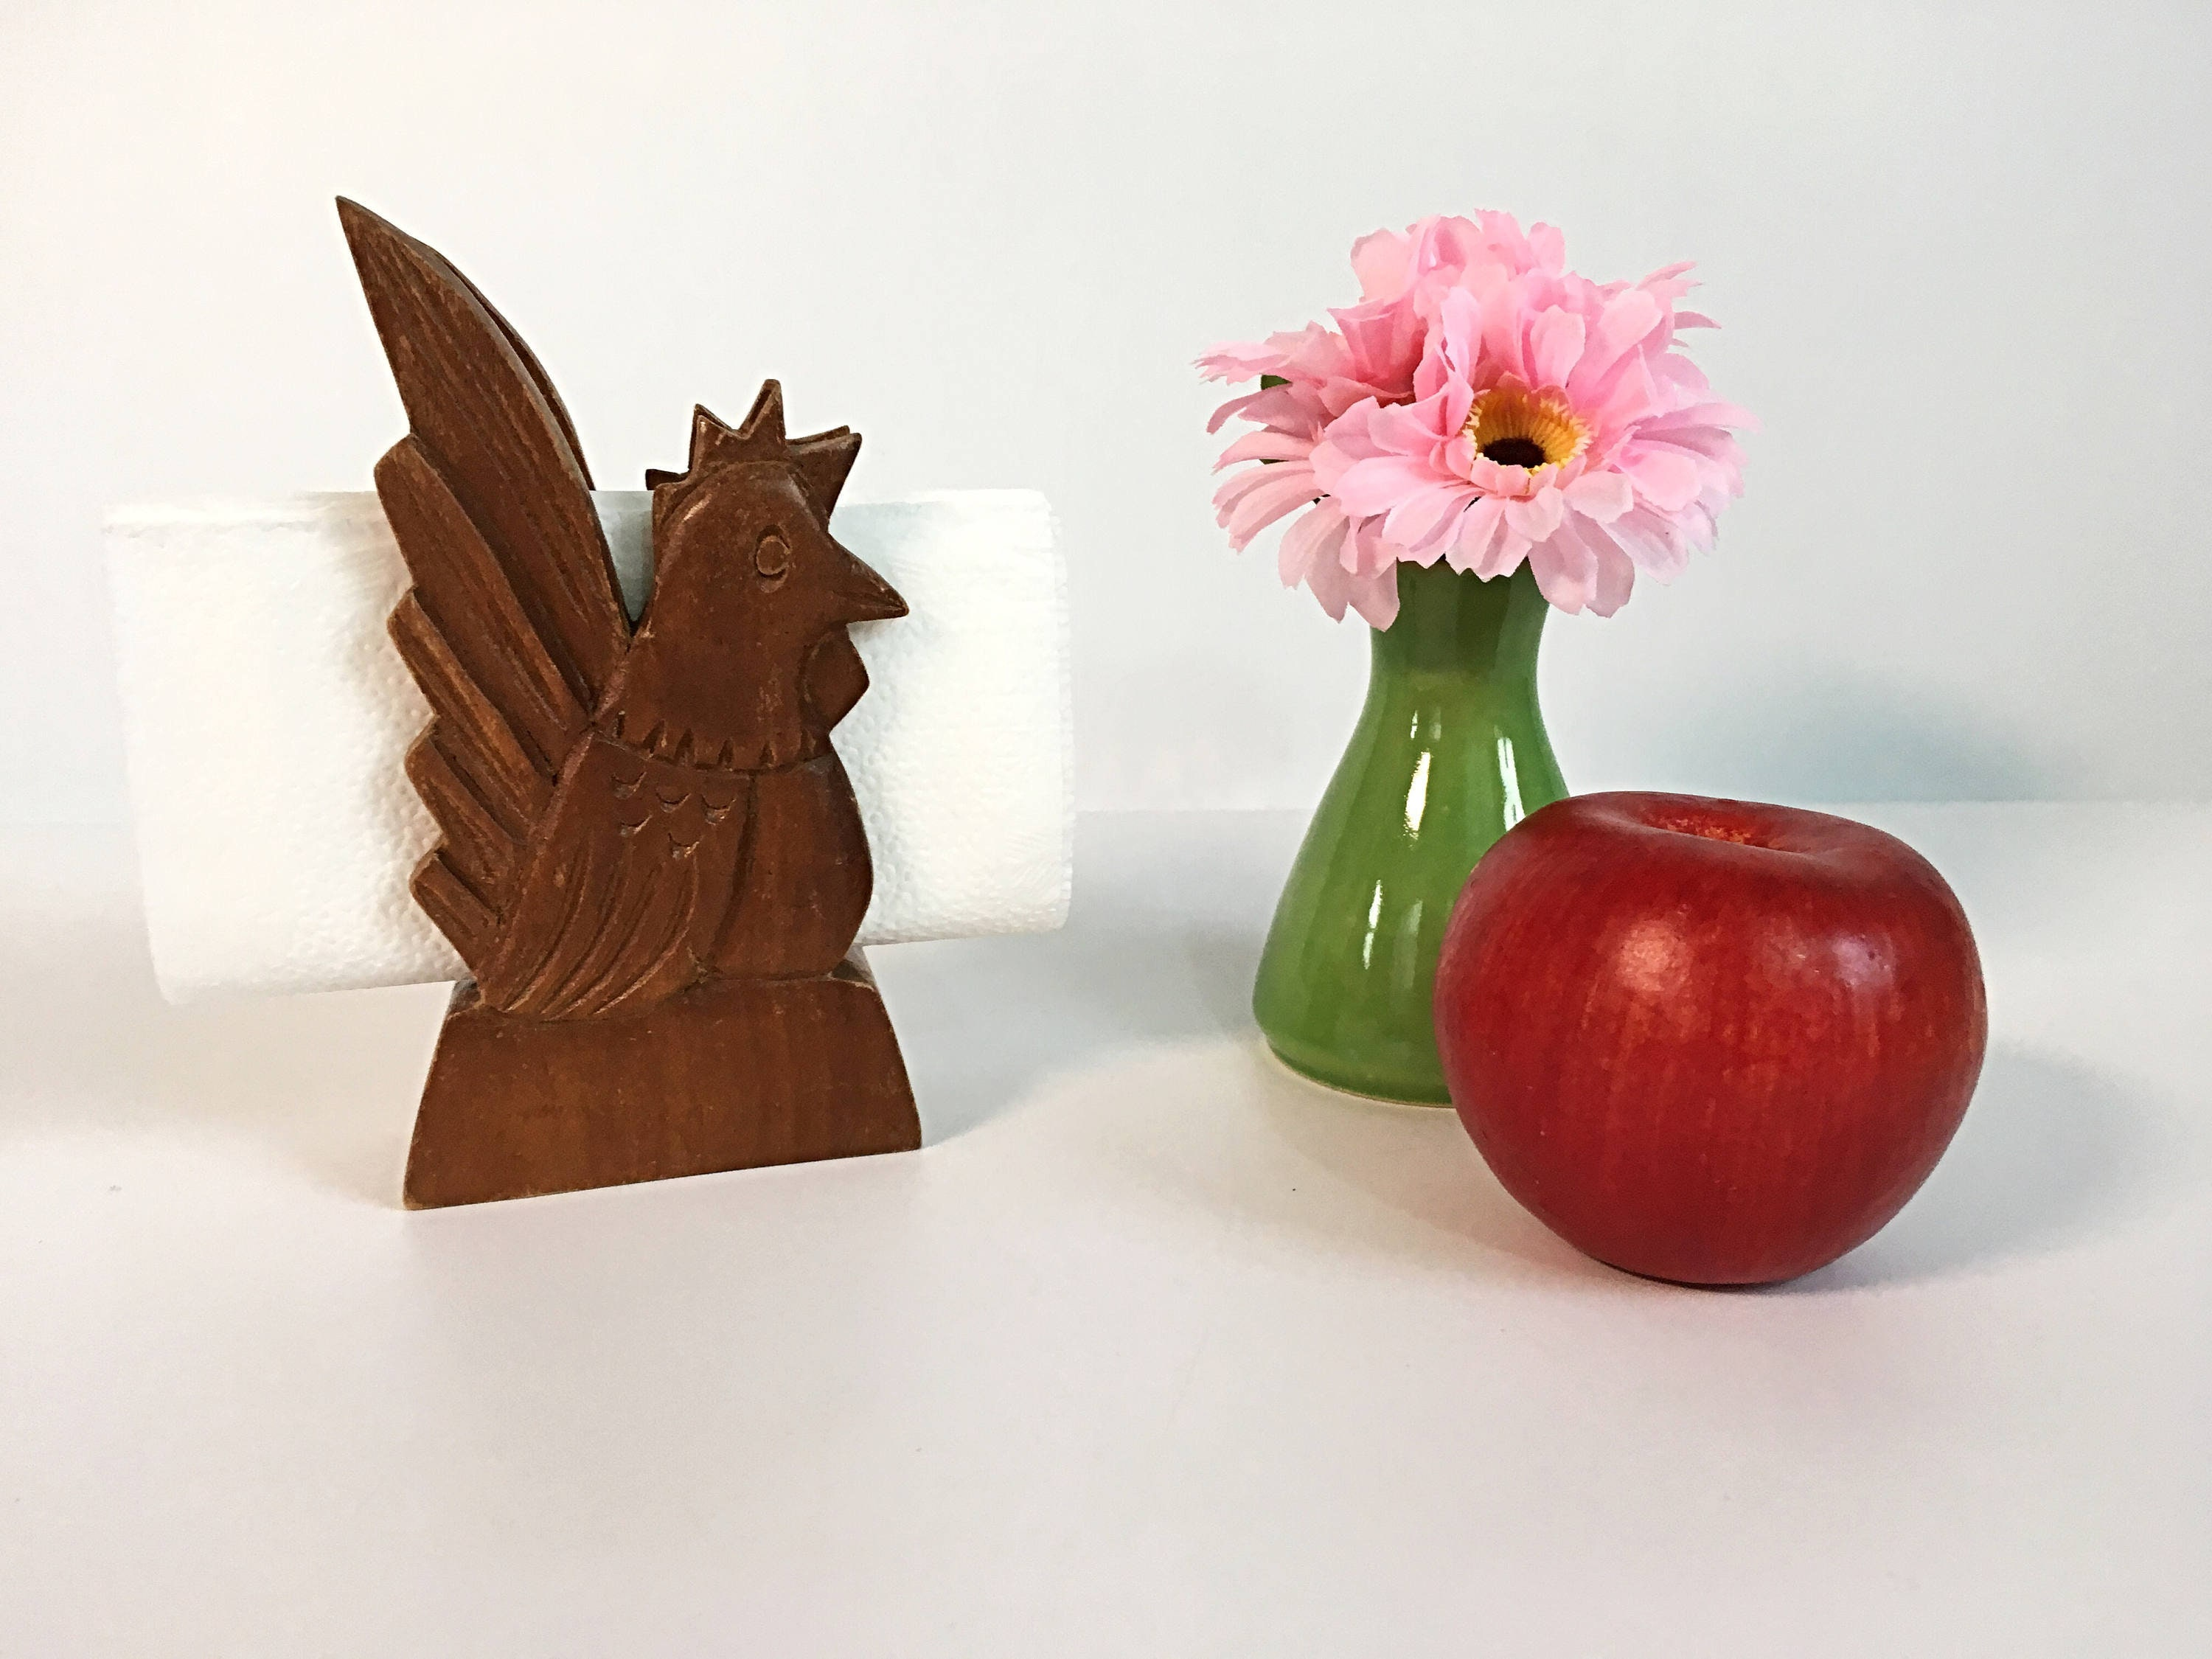 Vintage Wood Napkin Holder Rooster Chicken Country Farmhouse Decor Cottage Chic Retro Kitchen